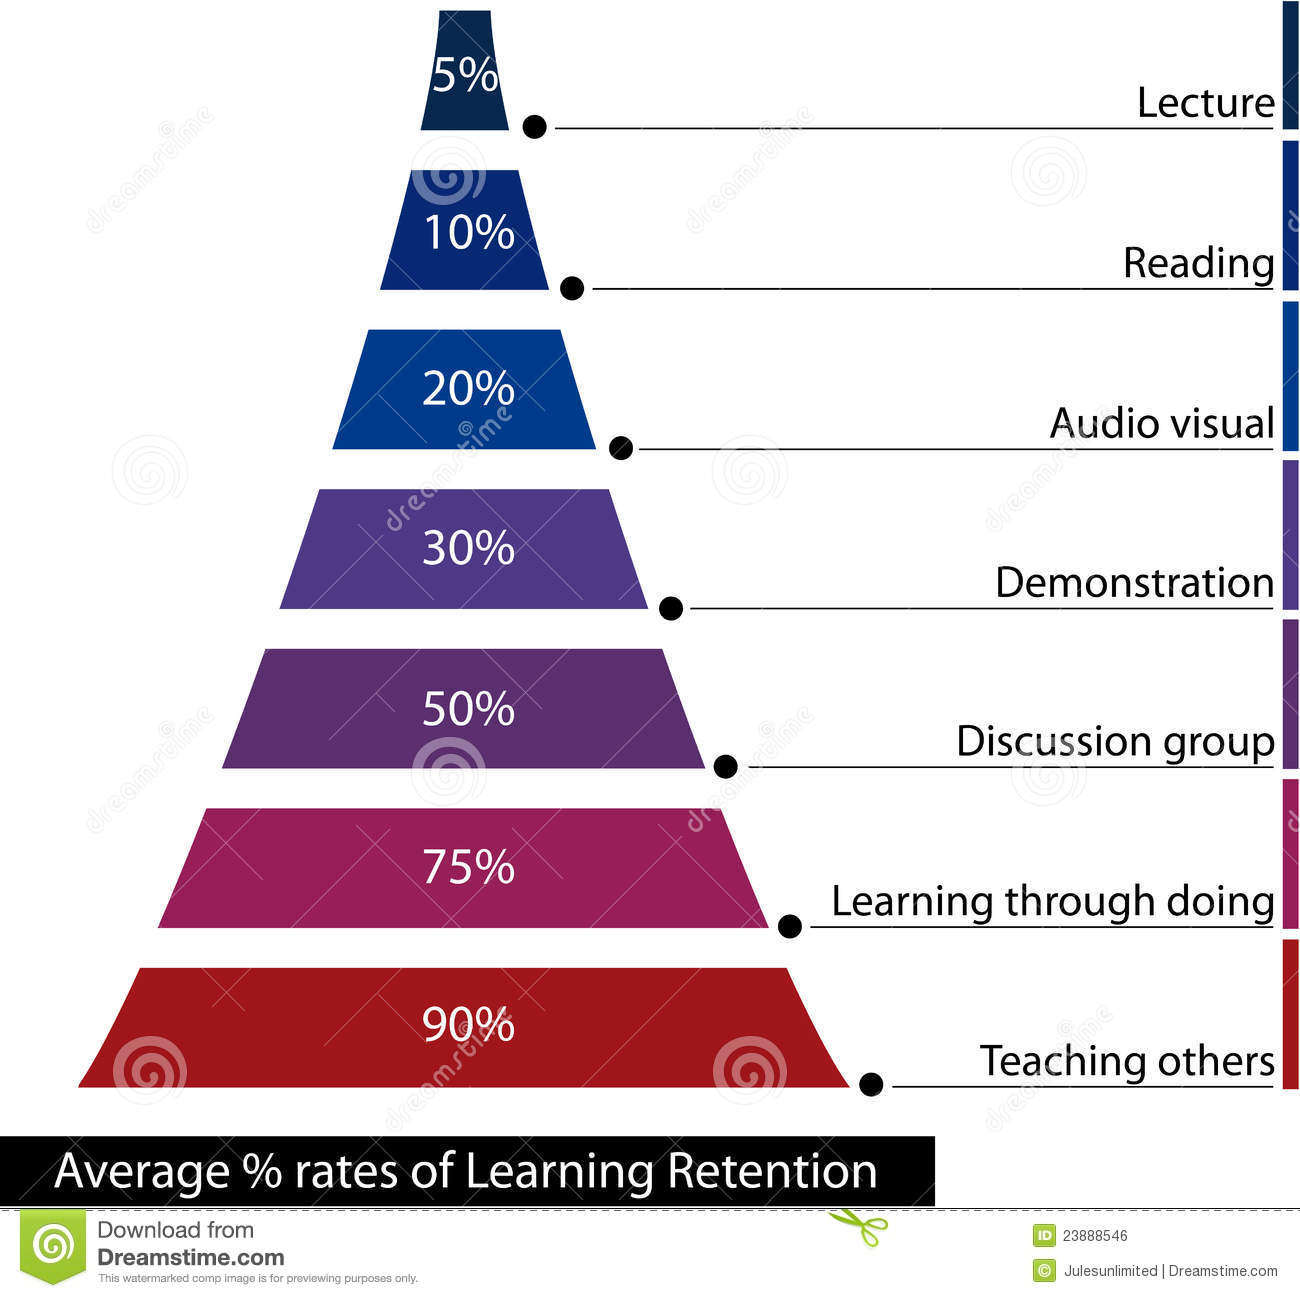 Learning retention